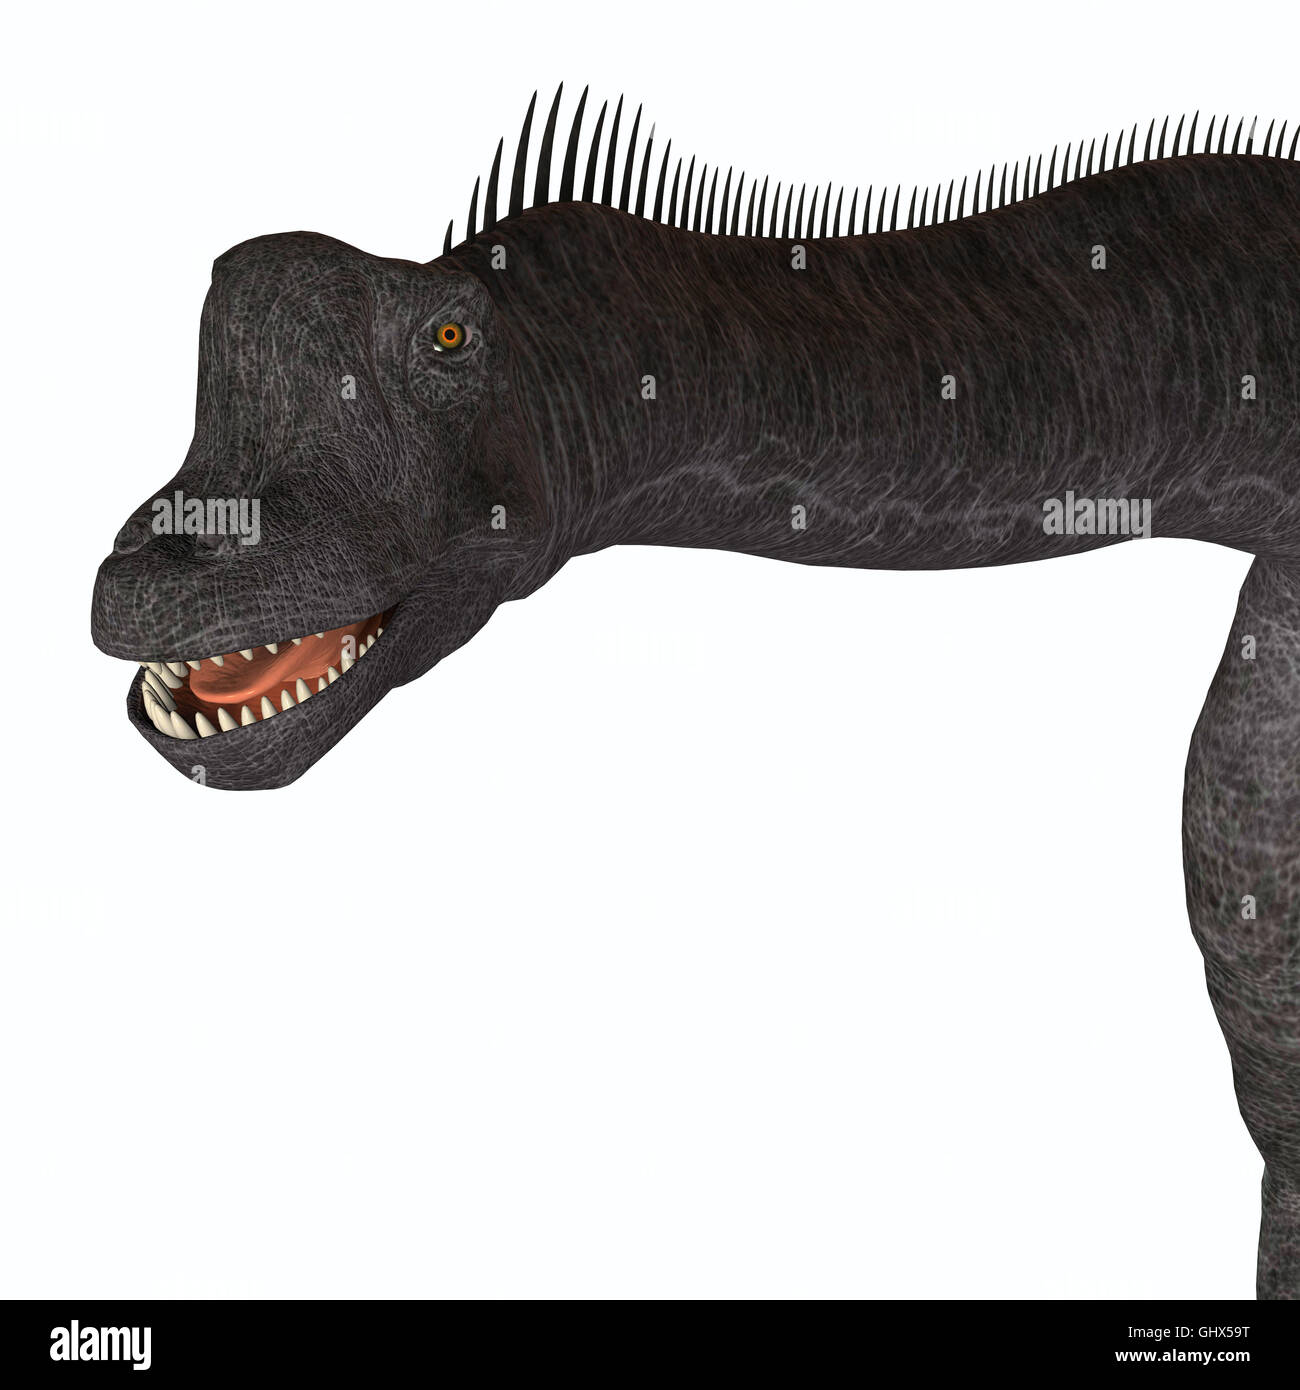 Brachiosaurus was a herbivorous sauropod dinosaur that lived in the Jurassic Period of North America. Stock Photo